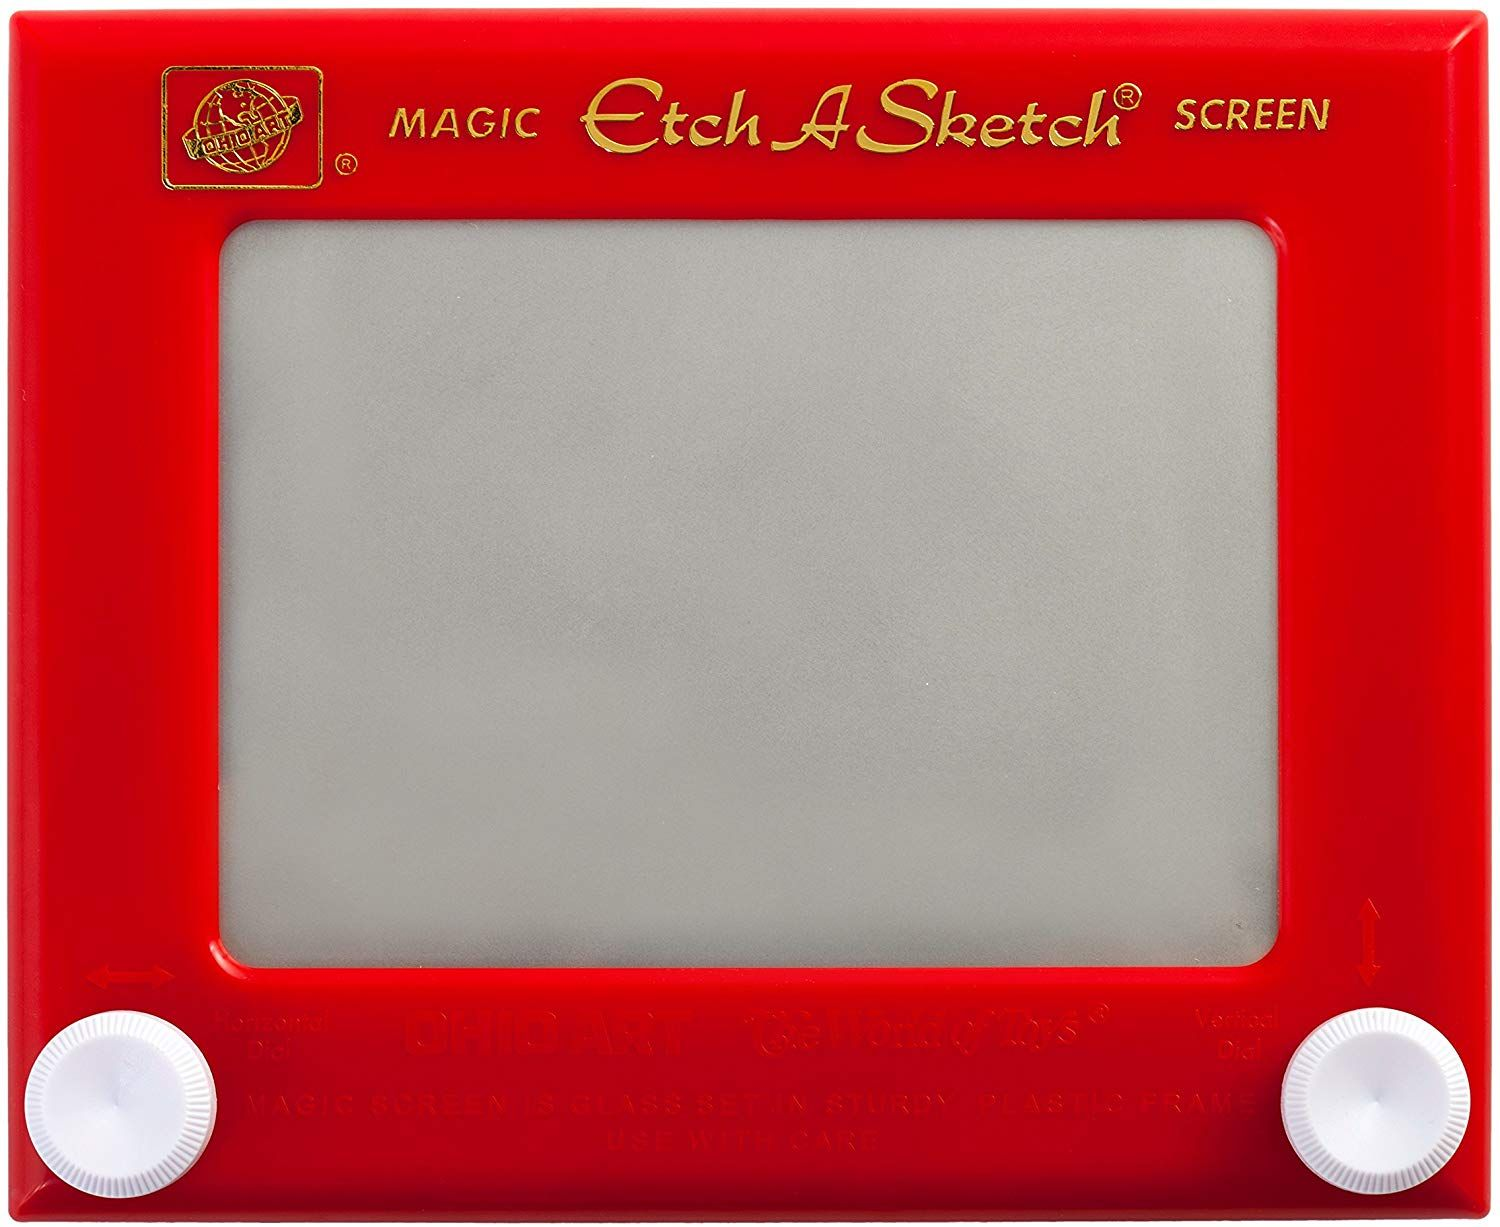 Do you remember the 1960s etchasketch was one of the